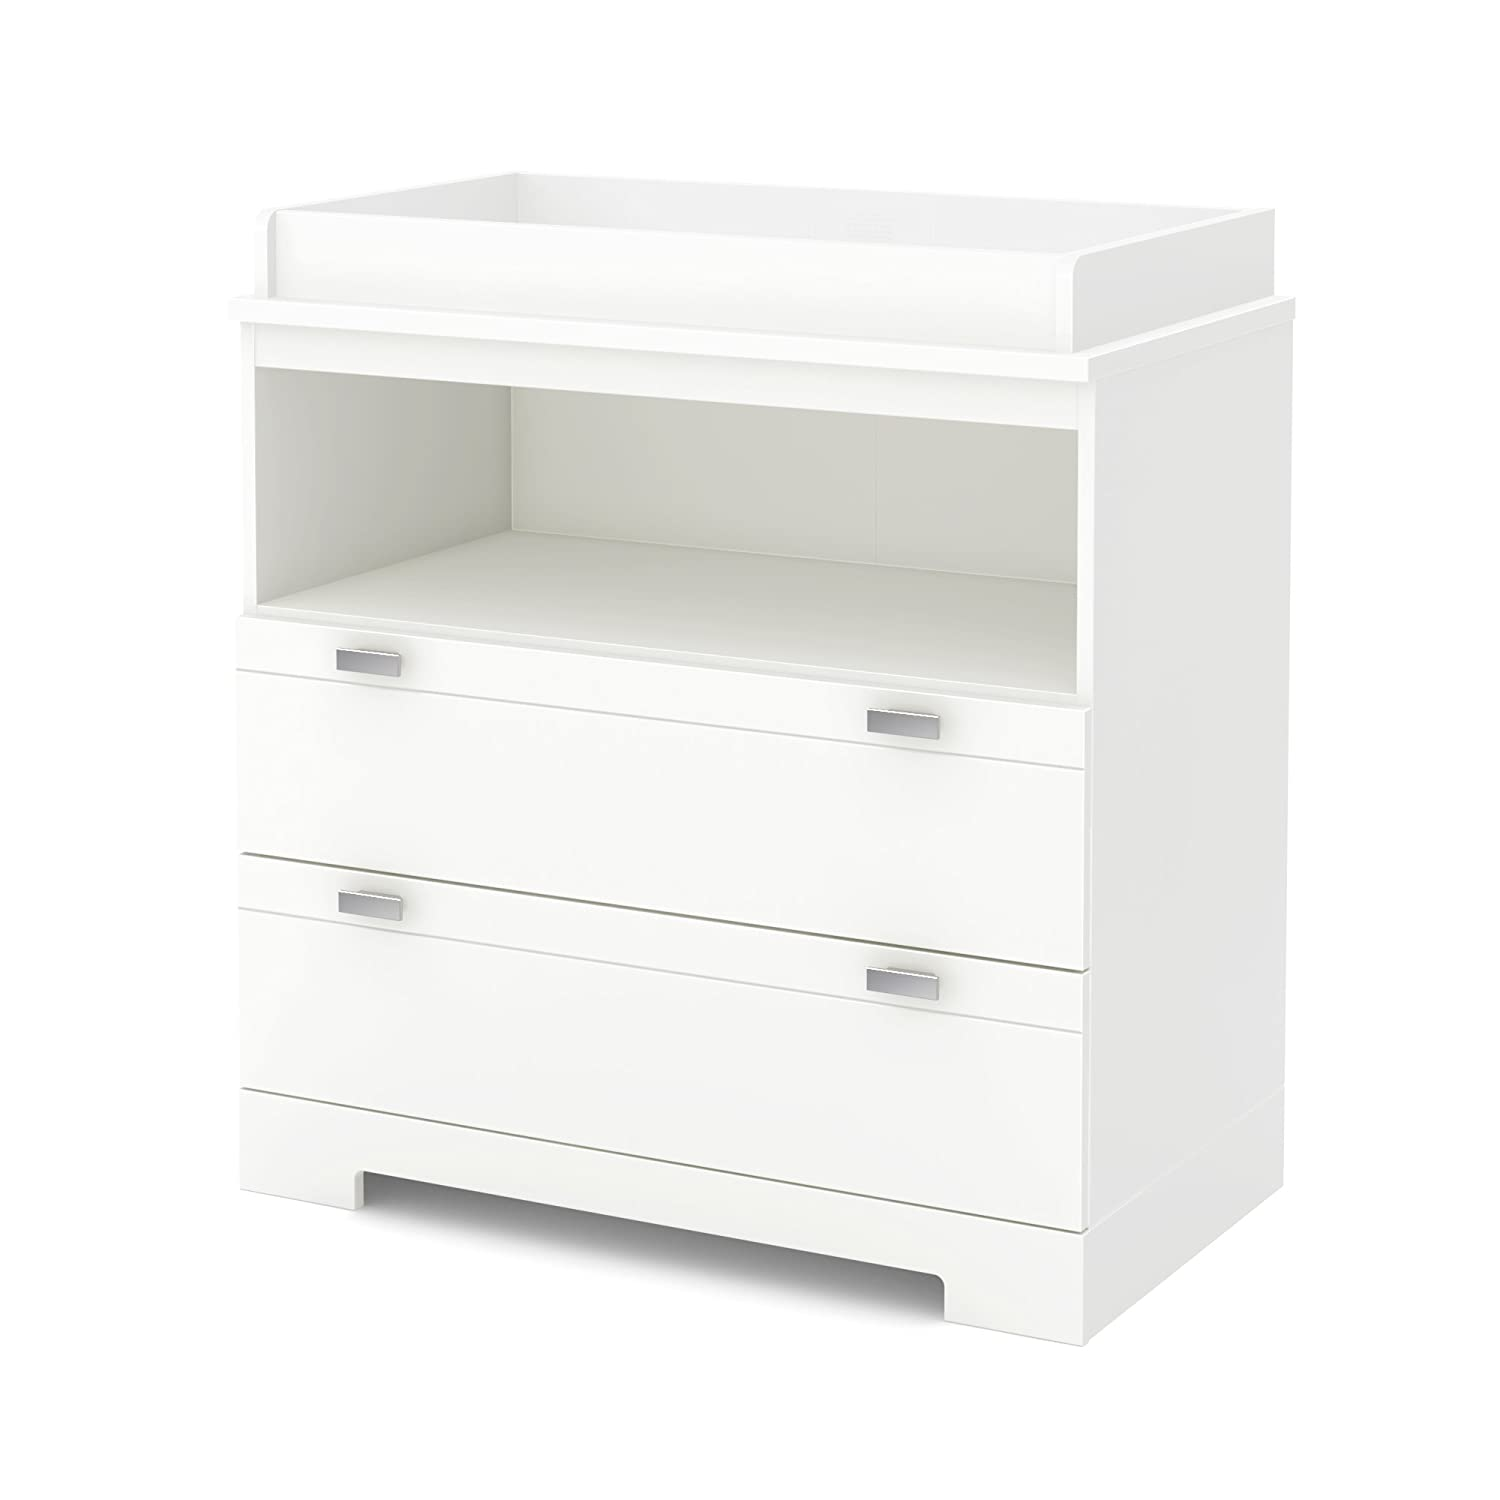 South Shore Reevo Changing Table and Dresser with Drawers, Pure White 3840330